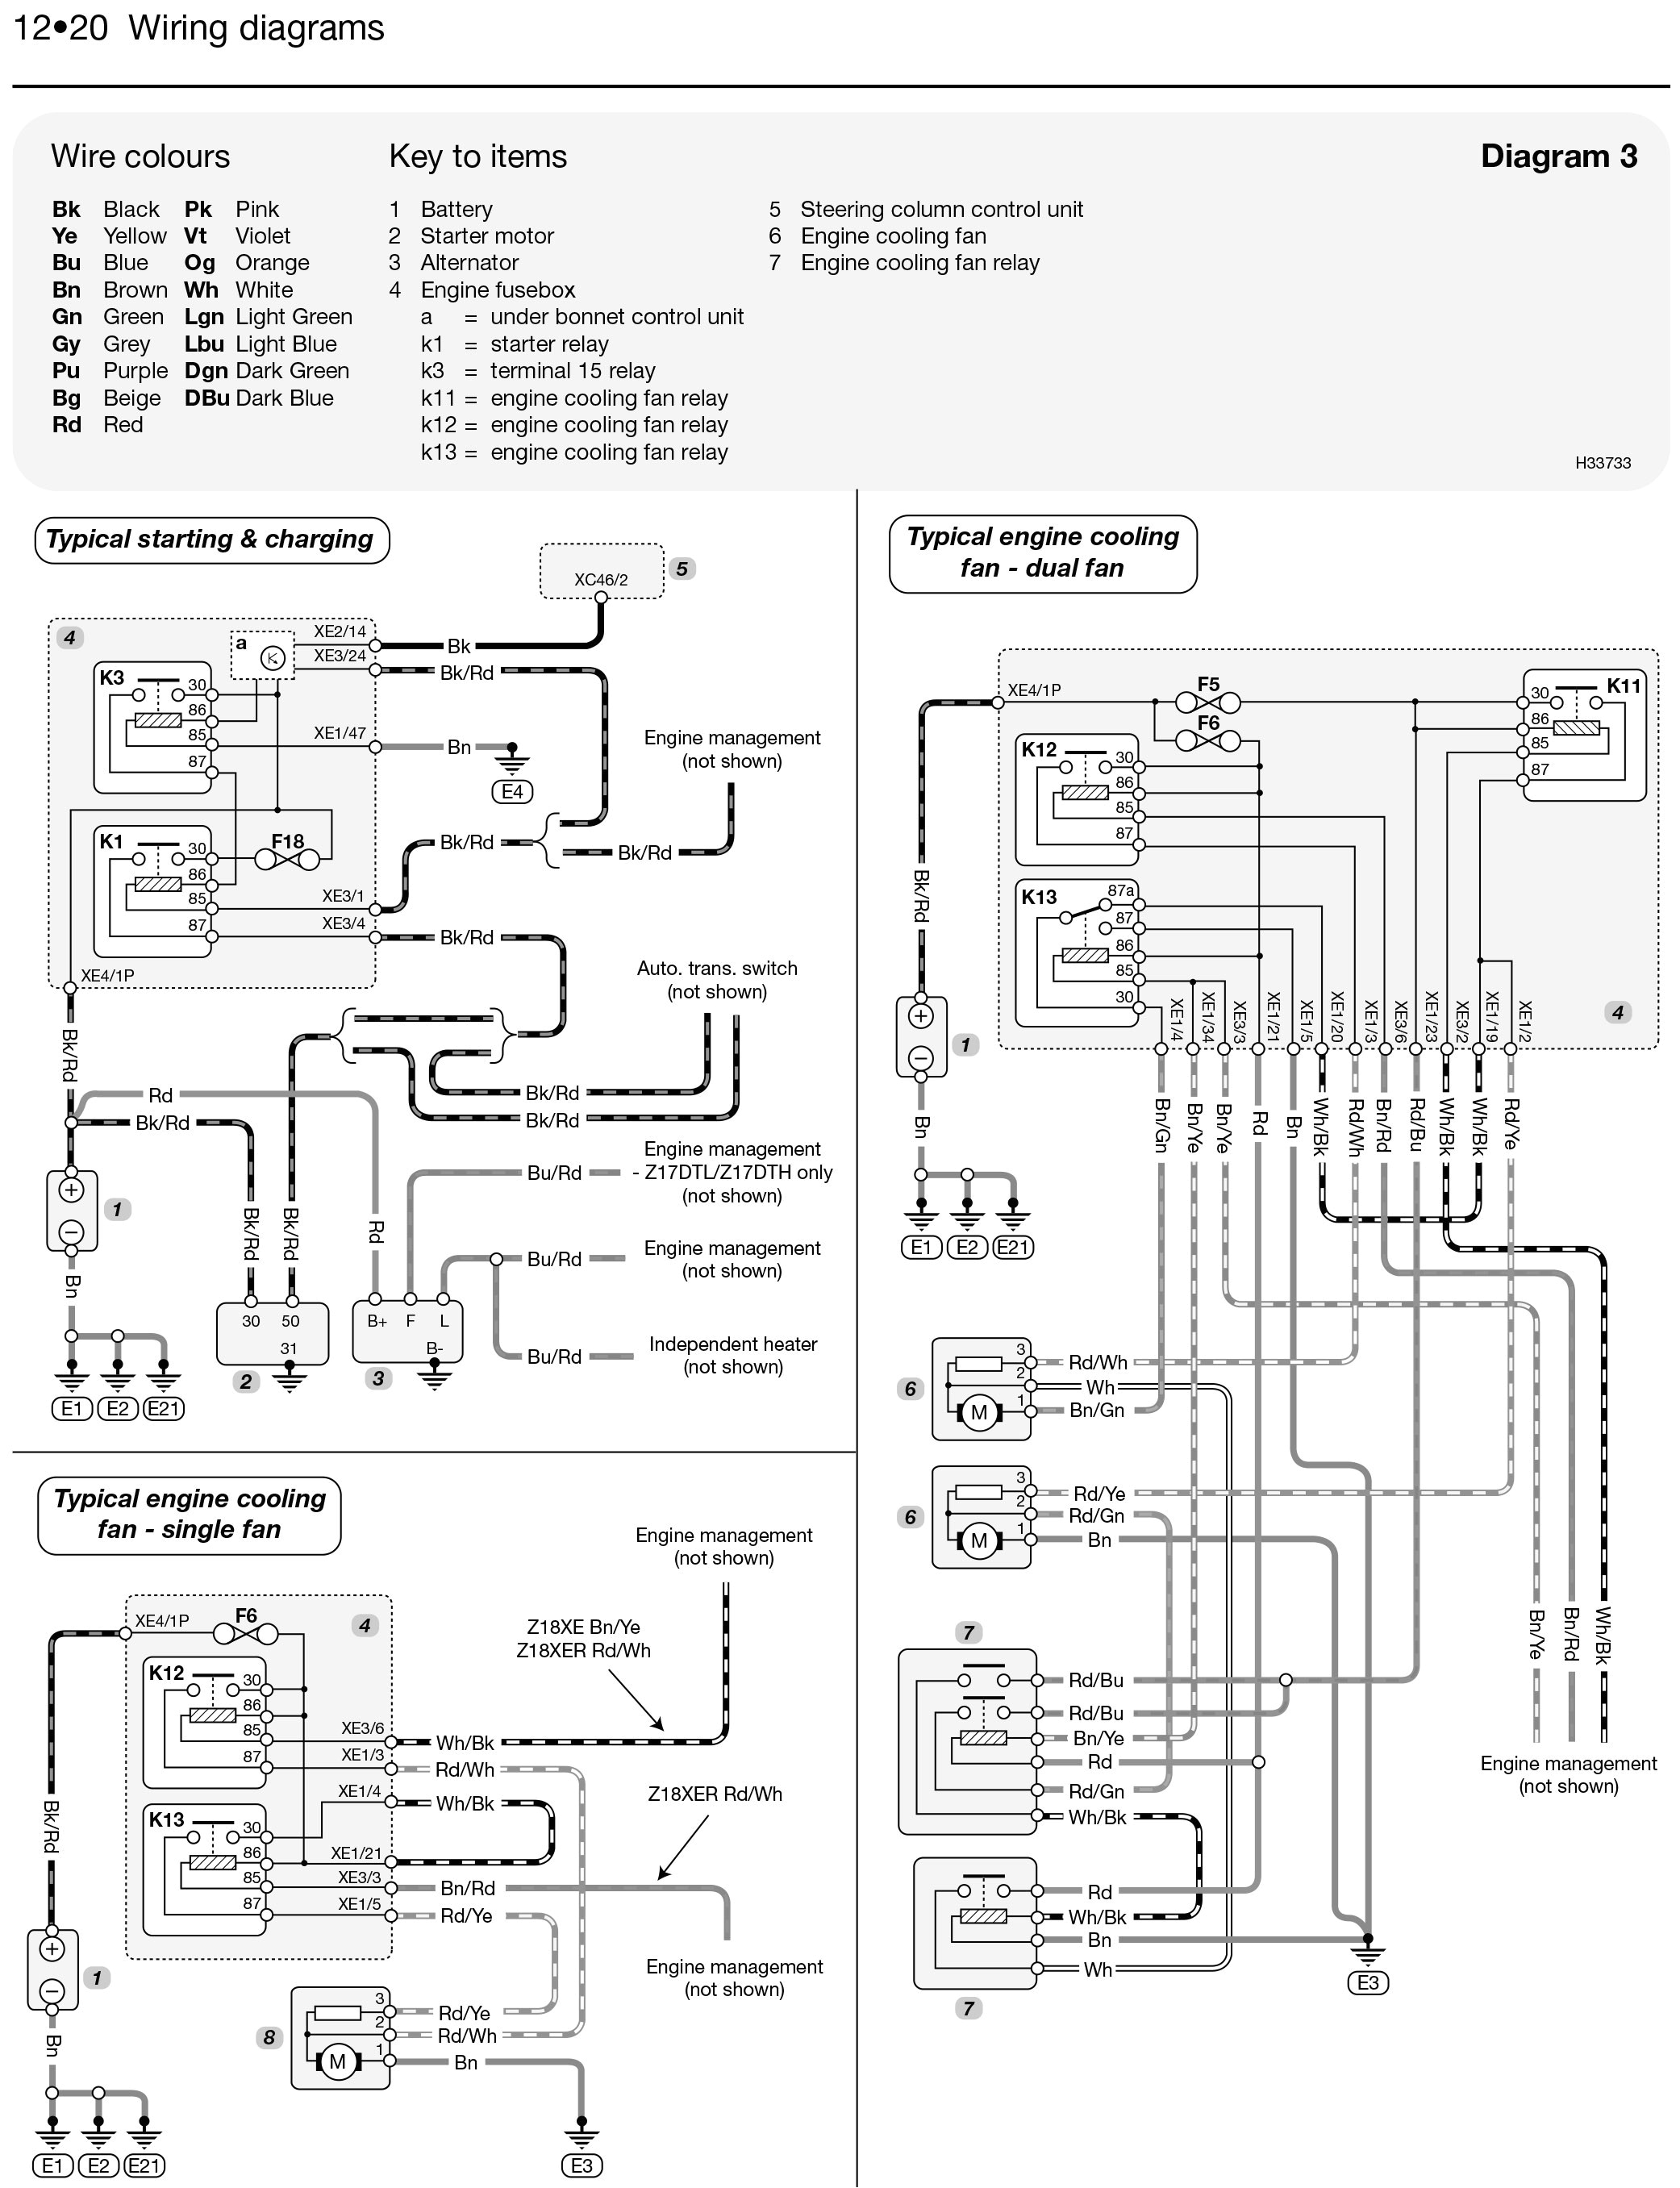 haynes wiring diagrams luxury simple haynes manual wiring diagram symbols joescablecar jpg